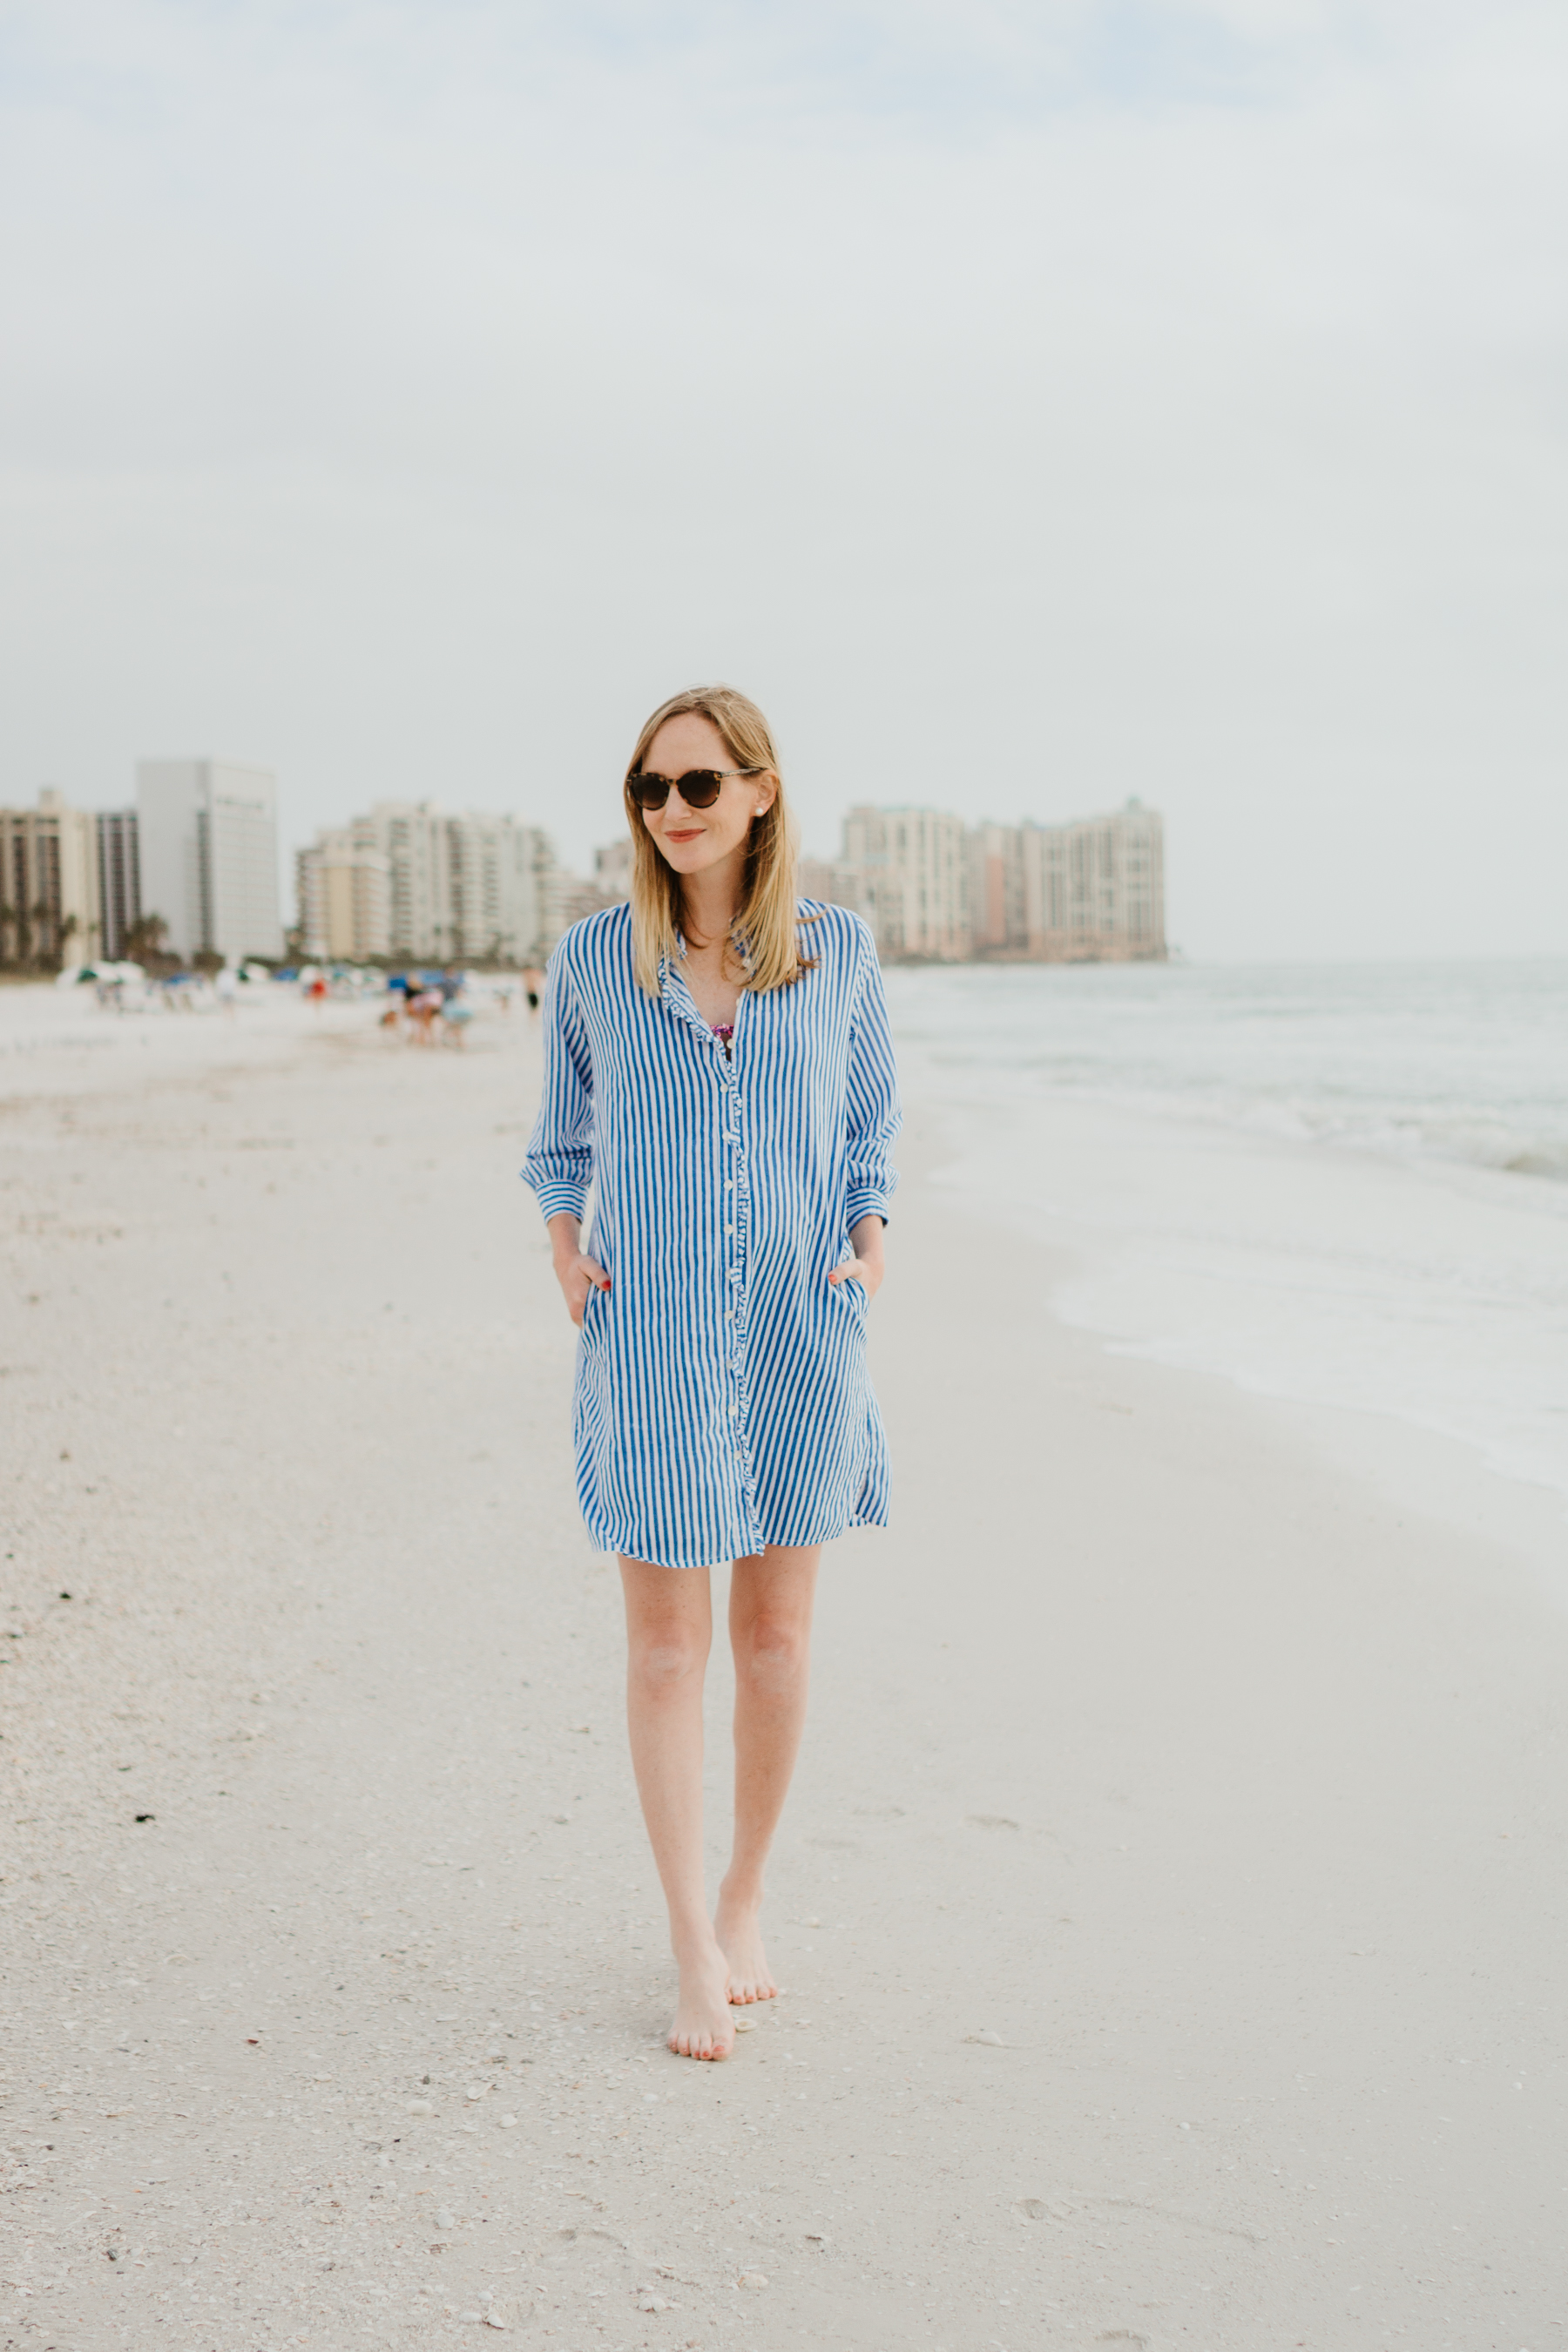 Kelly Larkin on the first day of our trip to Marco Island!